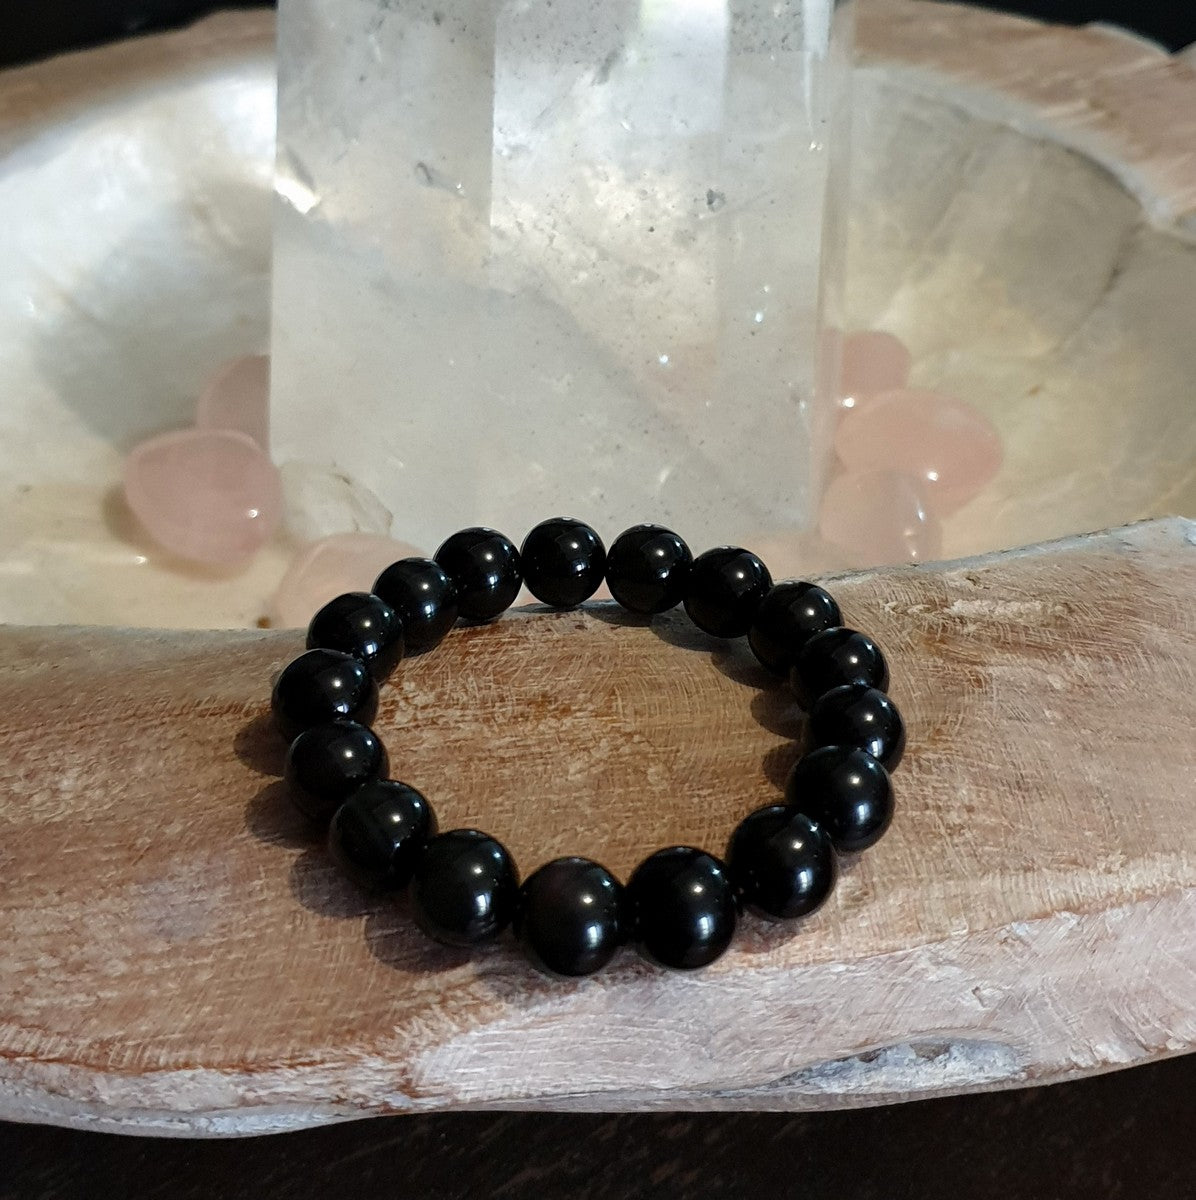 Rainbow Obsidian Round Beaded Stretch Bracelet Each - Shop Now at Illiom Crystals - Afterpay Available